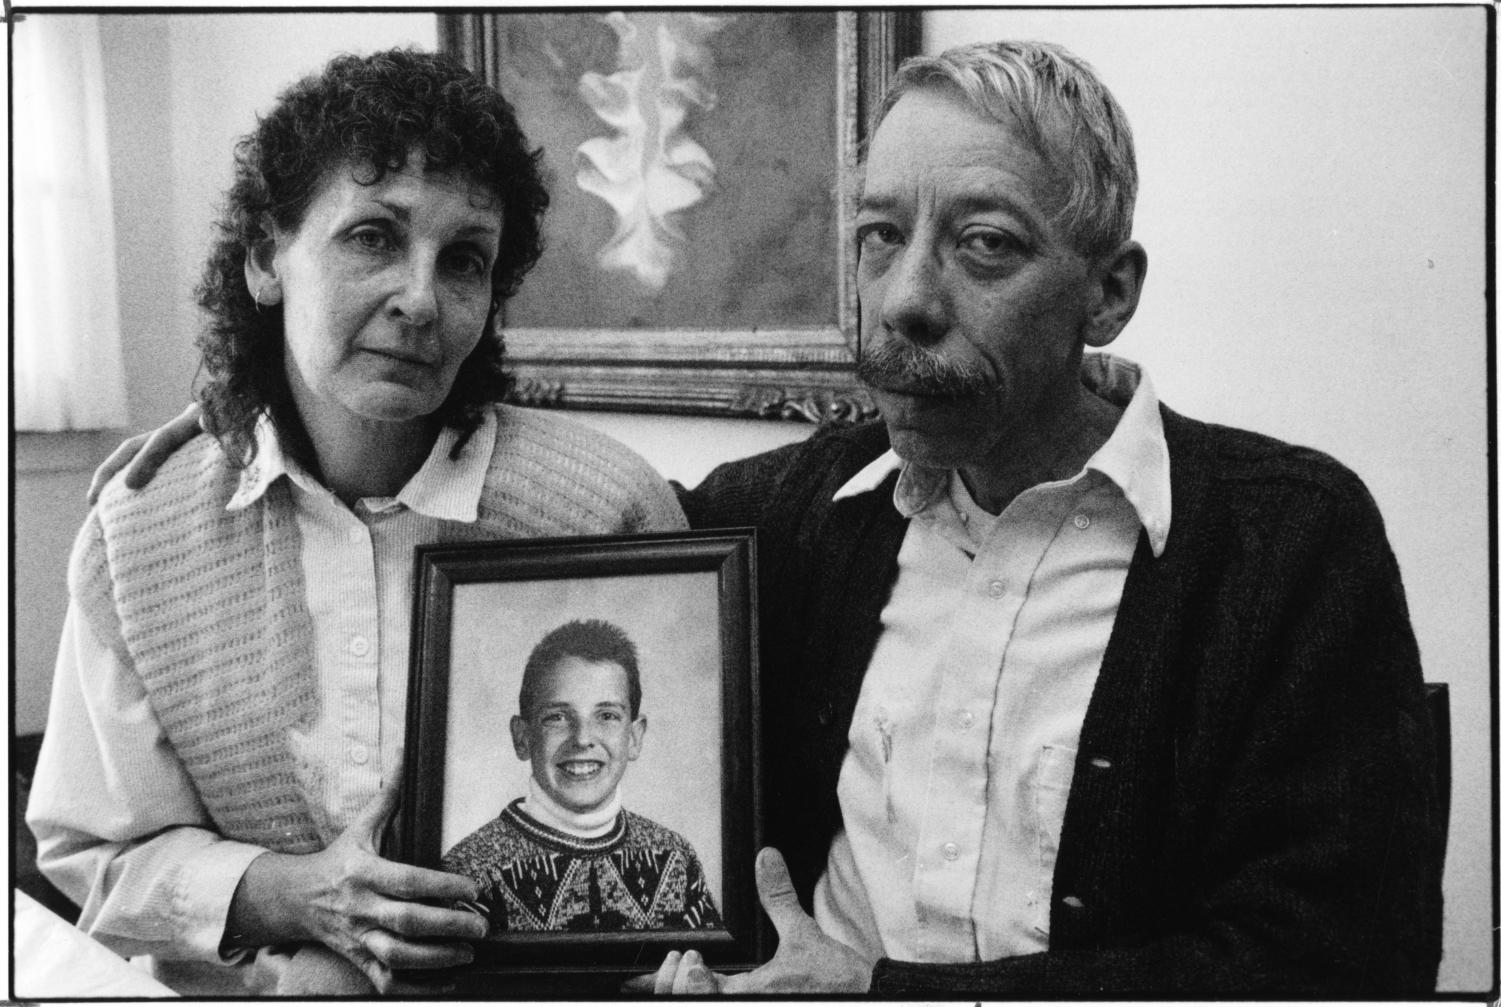 In this Jan. 7, 1992 photo, Esther and Allan Chereck, parents of slain David Chereck, hold a photo of their son during an interview at their home in Skokie, Ill. on Jan. 7, 1992. Eduardo Contreras, Robert Serritella was found guilty Thursday, May 23, 2019 of first-degree murder in the 1992 death of 15-year-old David Chereck. Serritella, 76, of Park Ridge, was charged in 2014 in the decades-old cold case. Chereck was found strangled with his own scarf in a Morton Grove forest preserve.